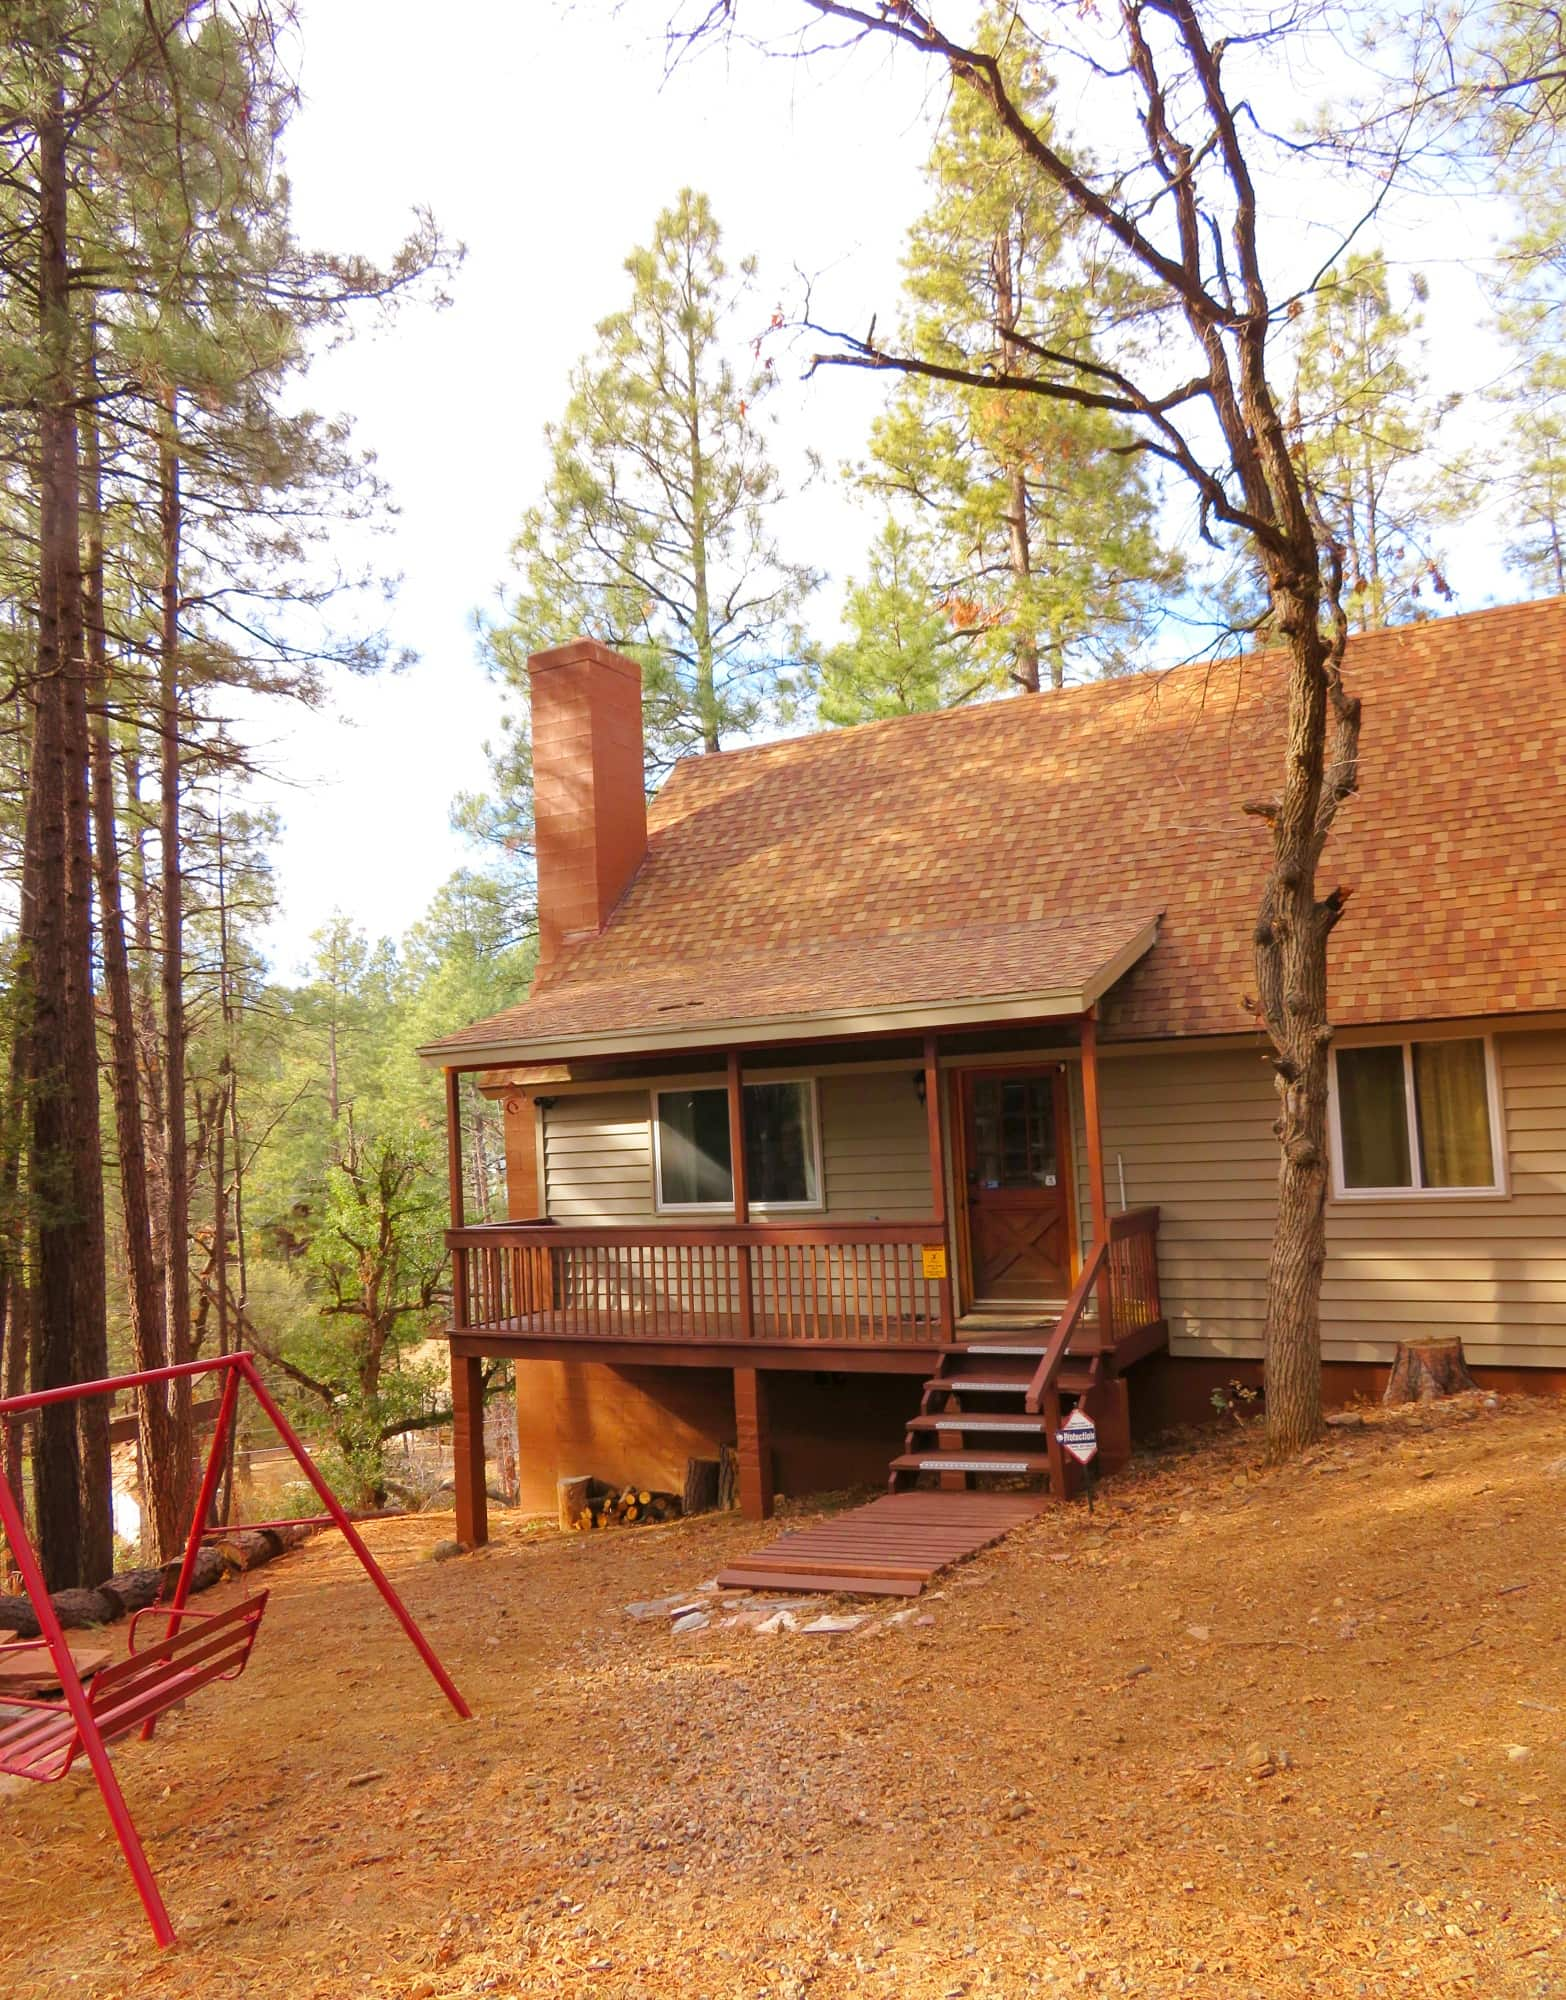 Our HomeAway cabin in the woods in Prescott with kids